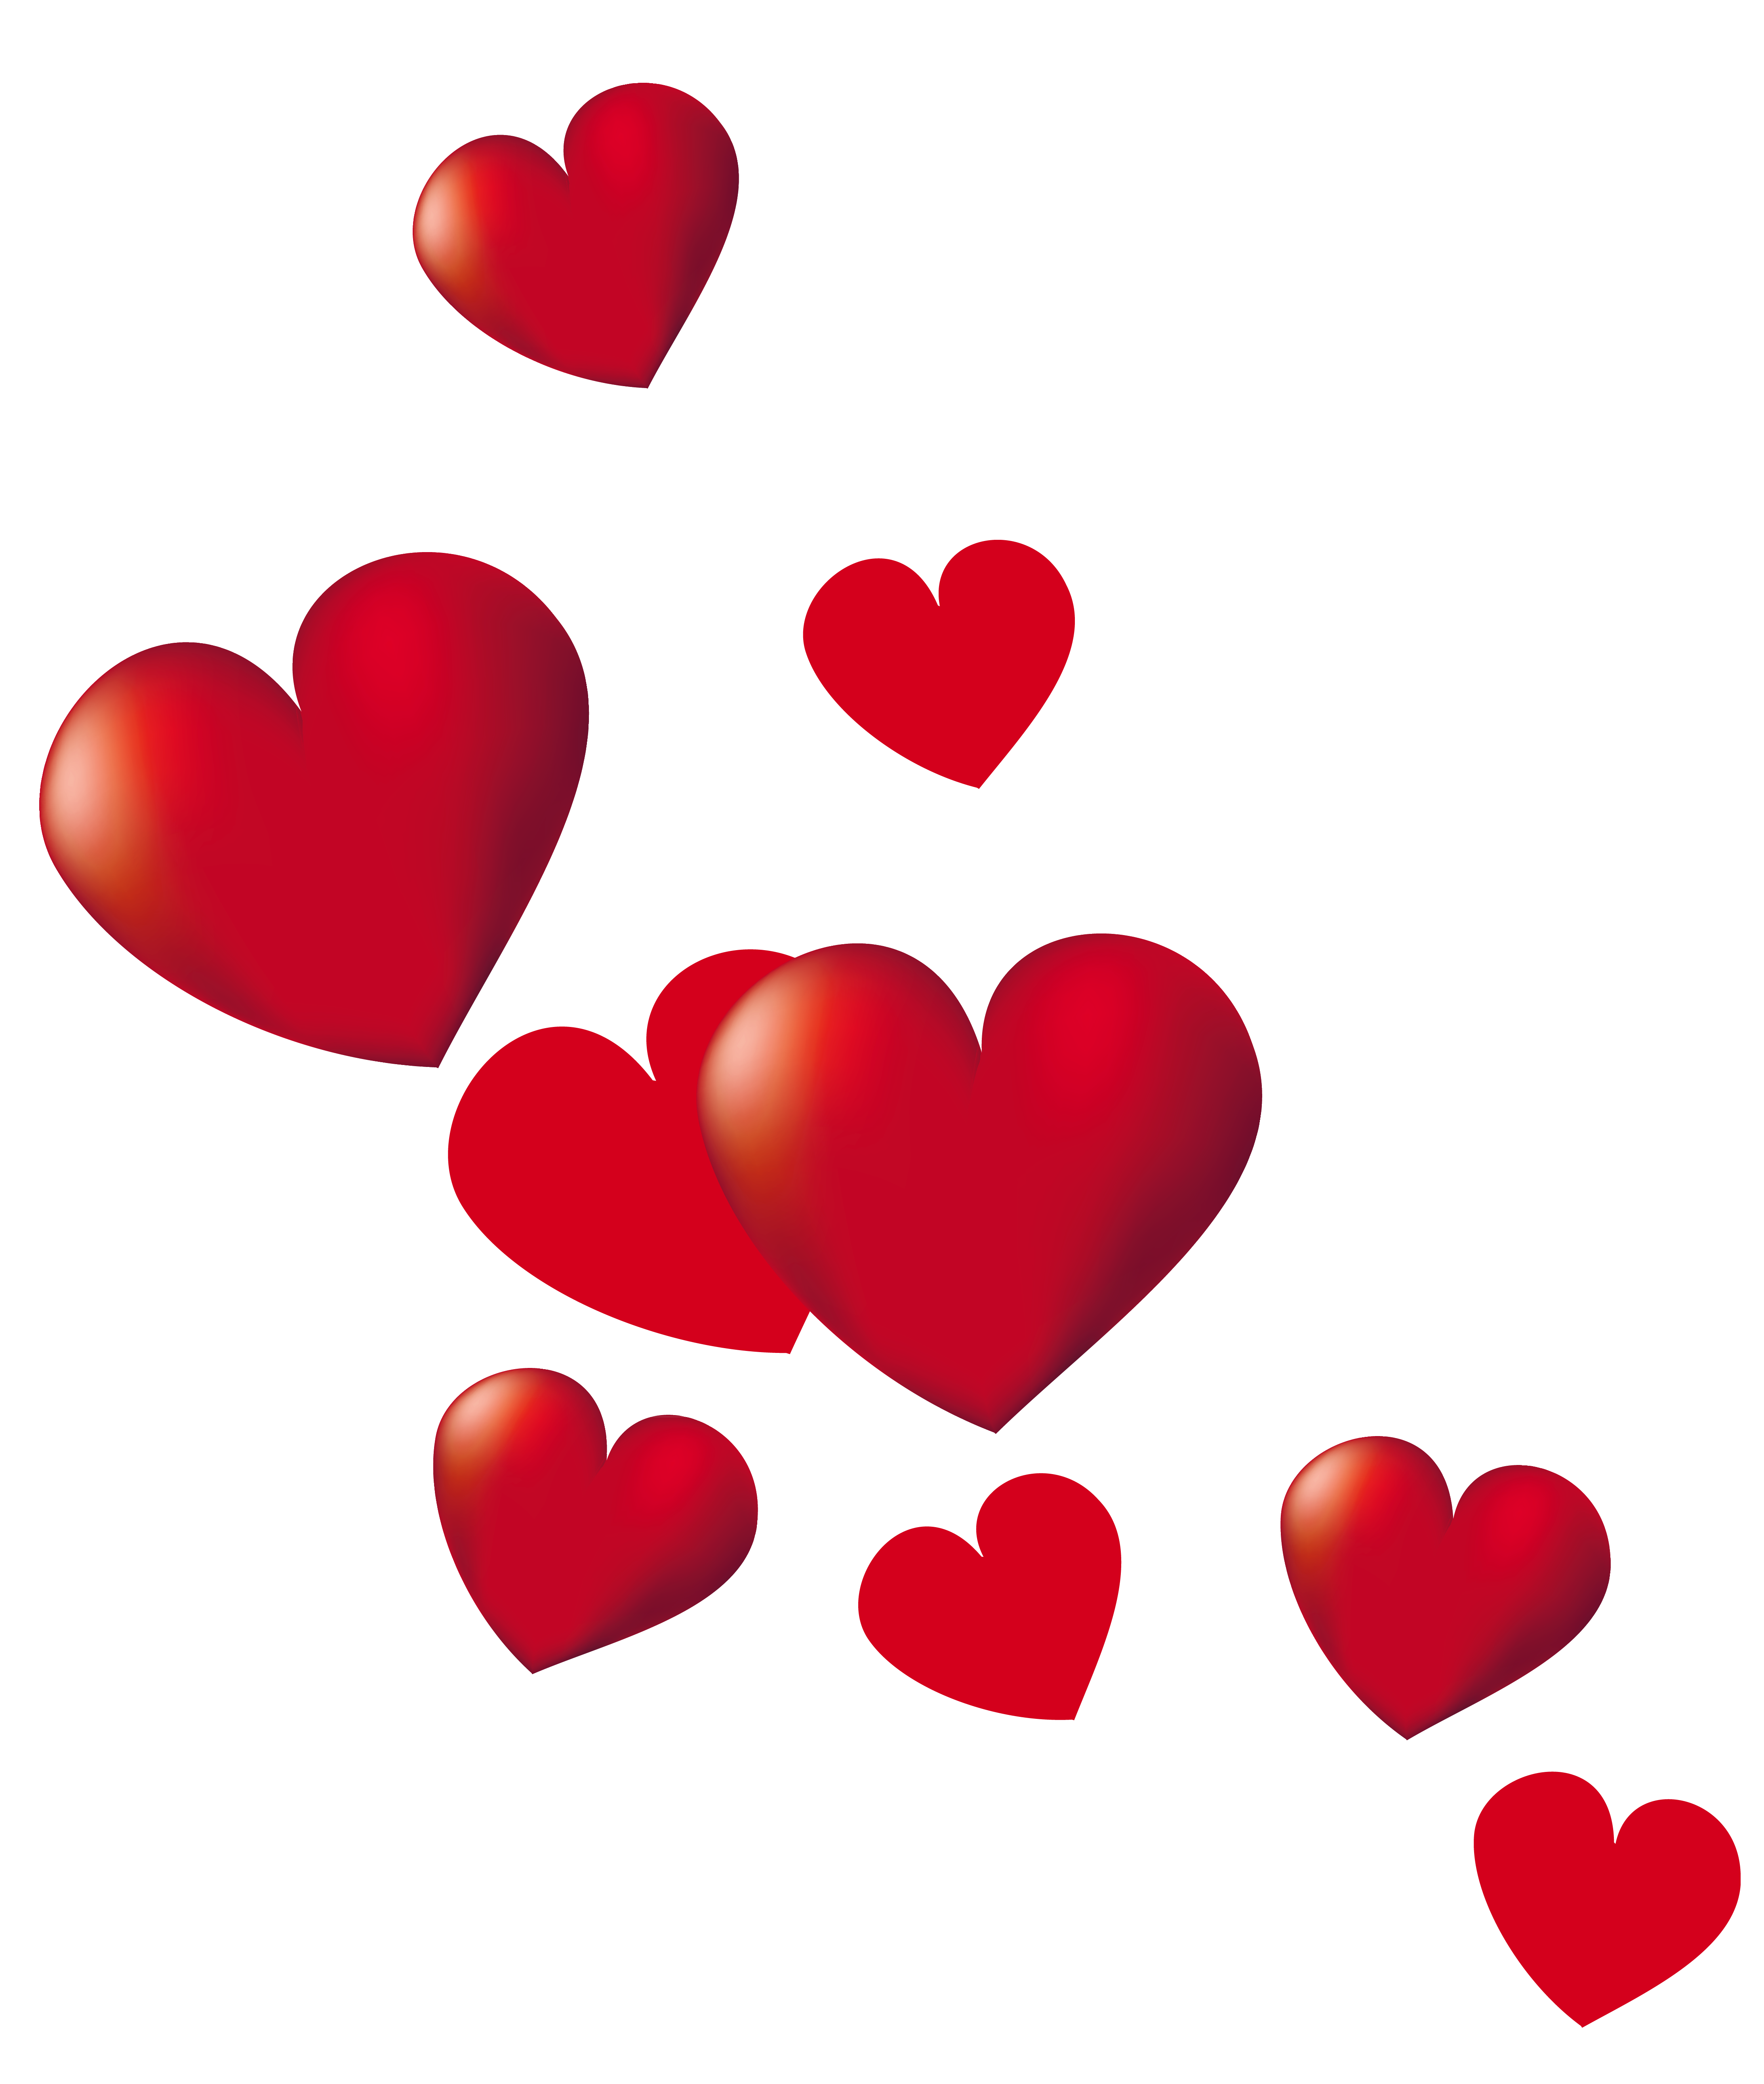 Clipart heart png. Hearts picture gallery yopriceville